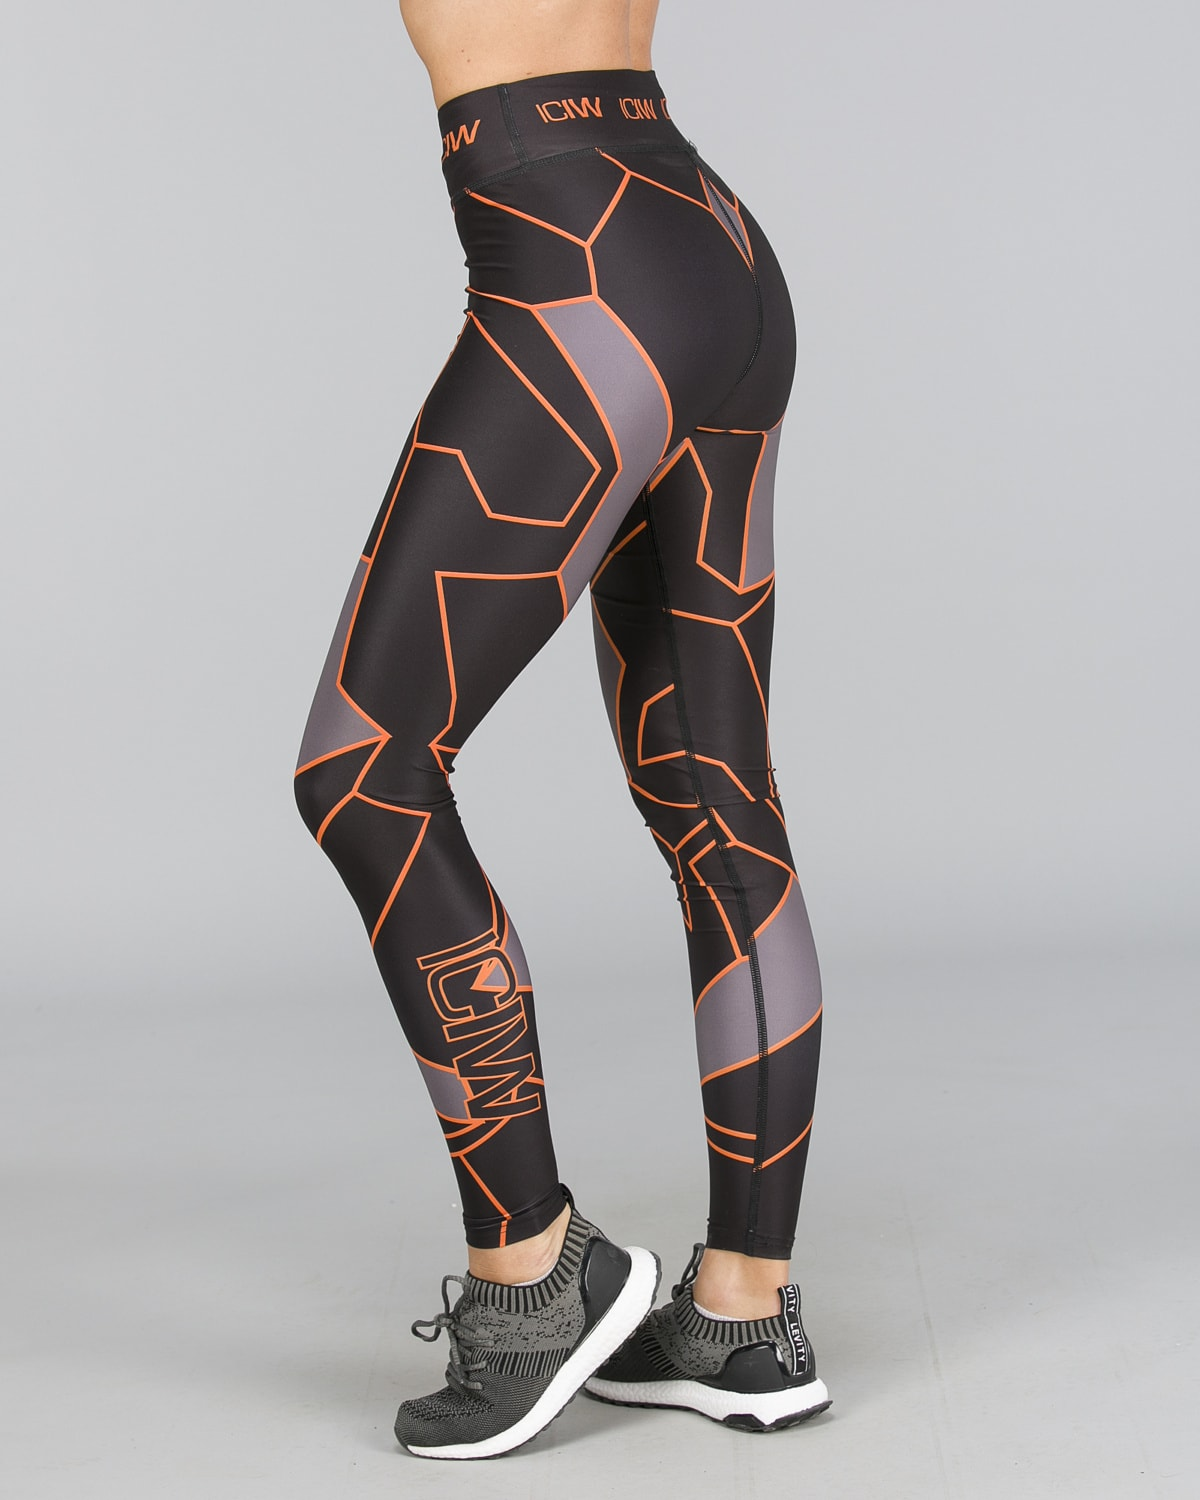 ICANIWILL – Orange Camo Tights f